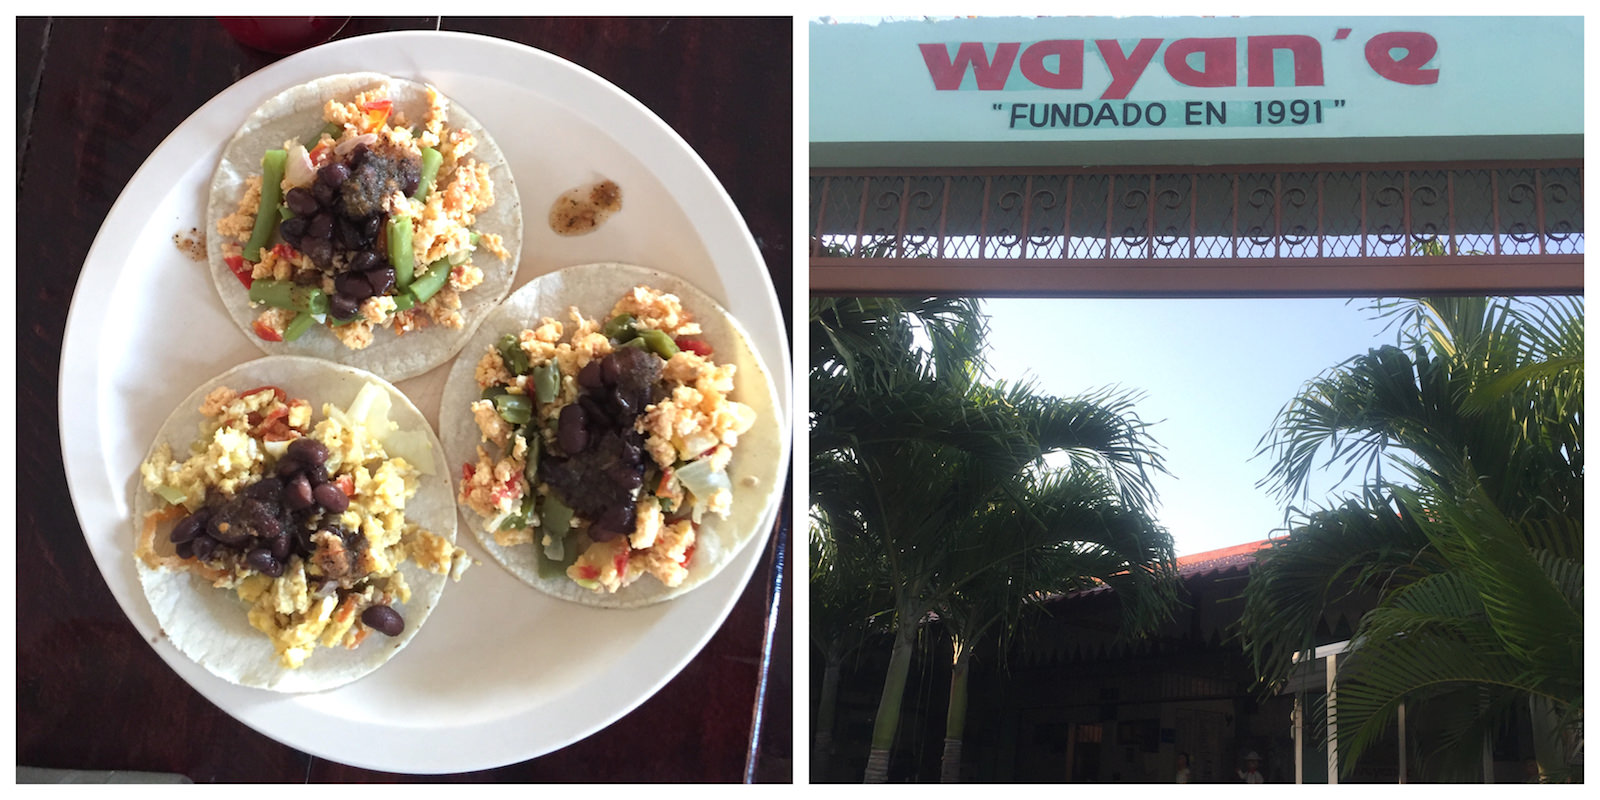 Wayan'e Merida Mexico Vegetarian Restaurant